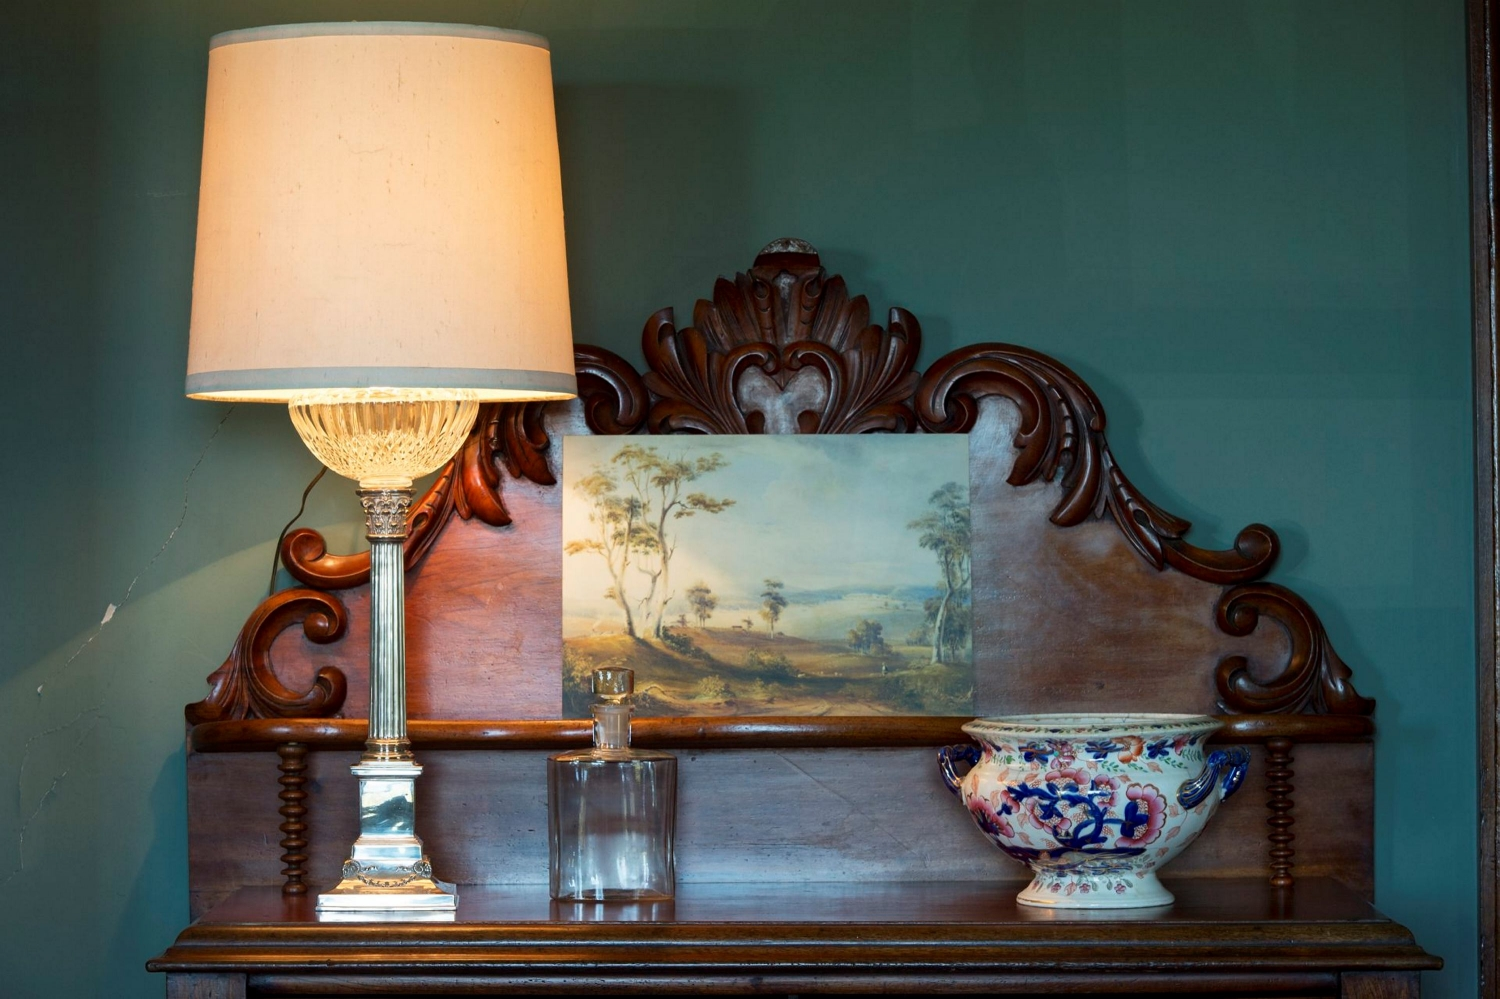 The shelf of a chiffonier with an old lampshade, painting and other ornaments against a green wall.